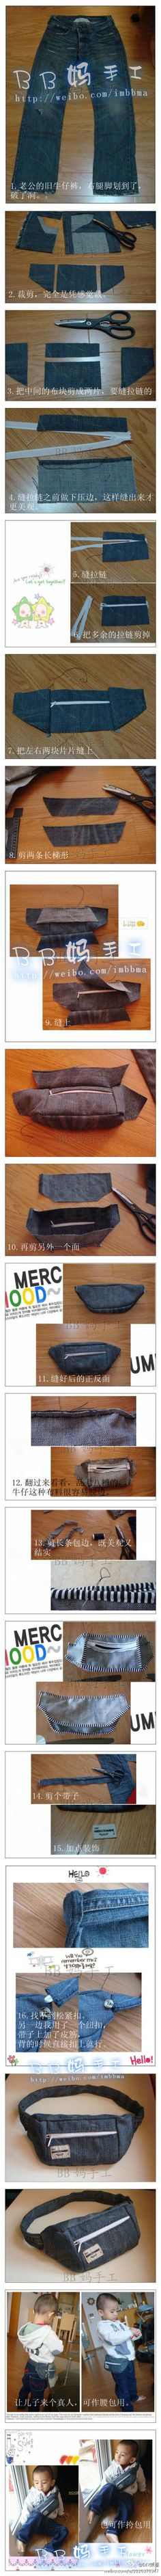 DIY denim fanny pack - photo tutorial in Chinese